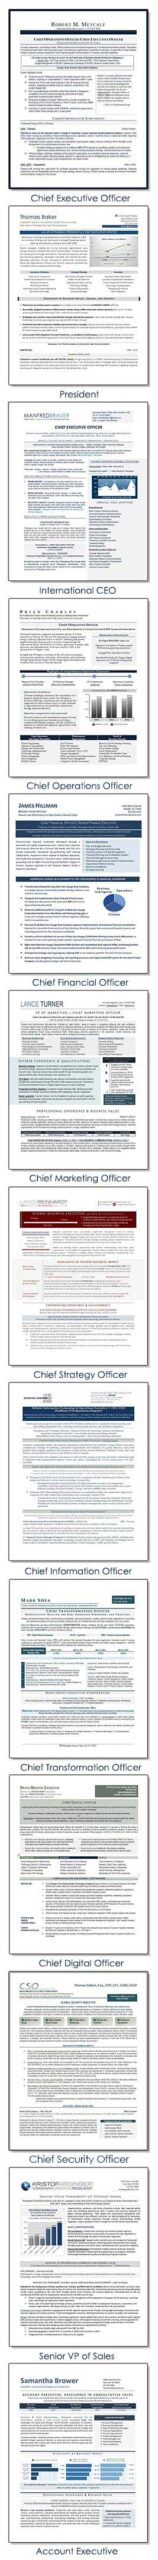 top executive resume writing services in and best certified writers new chipotle Resume Best Certified Resume Writers